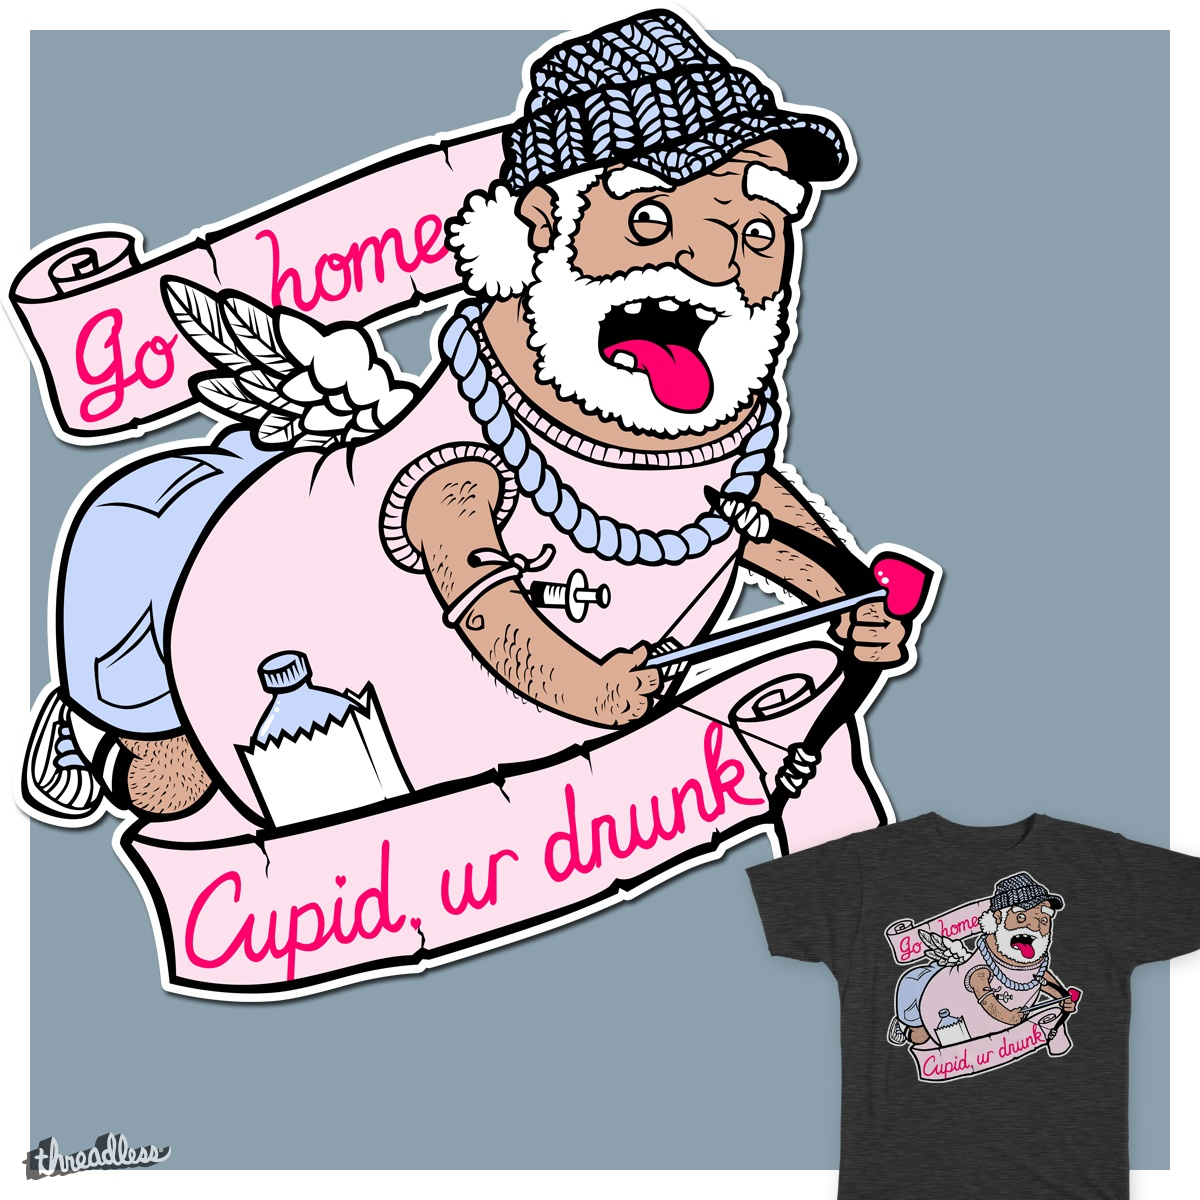 Cupid clipart drunk Go Crushem Cupid drunk home